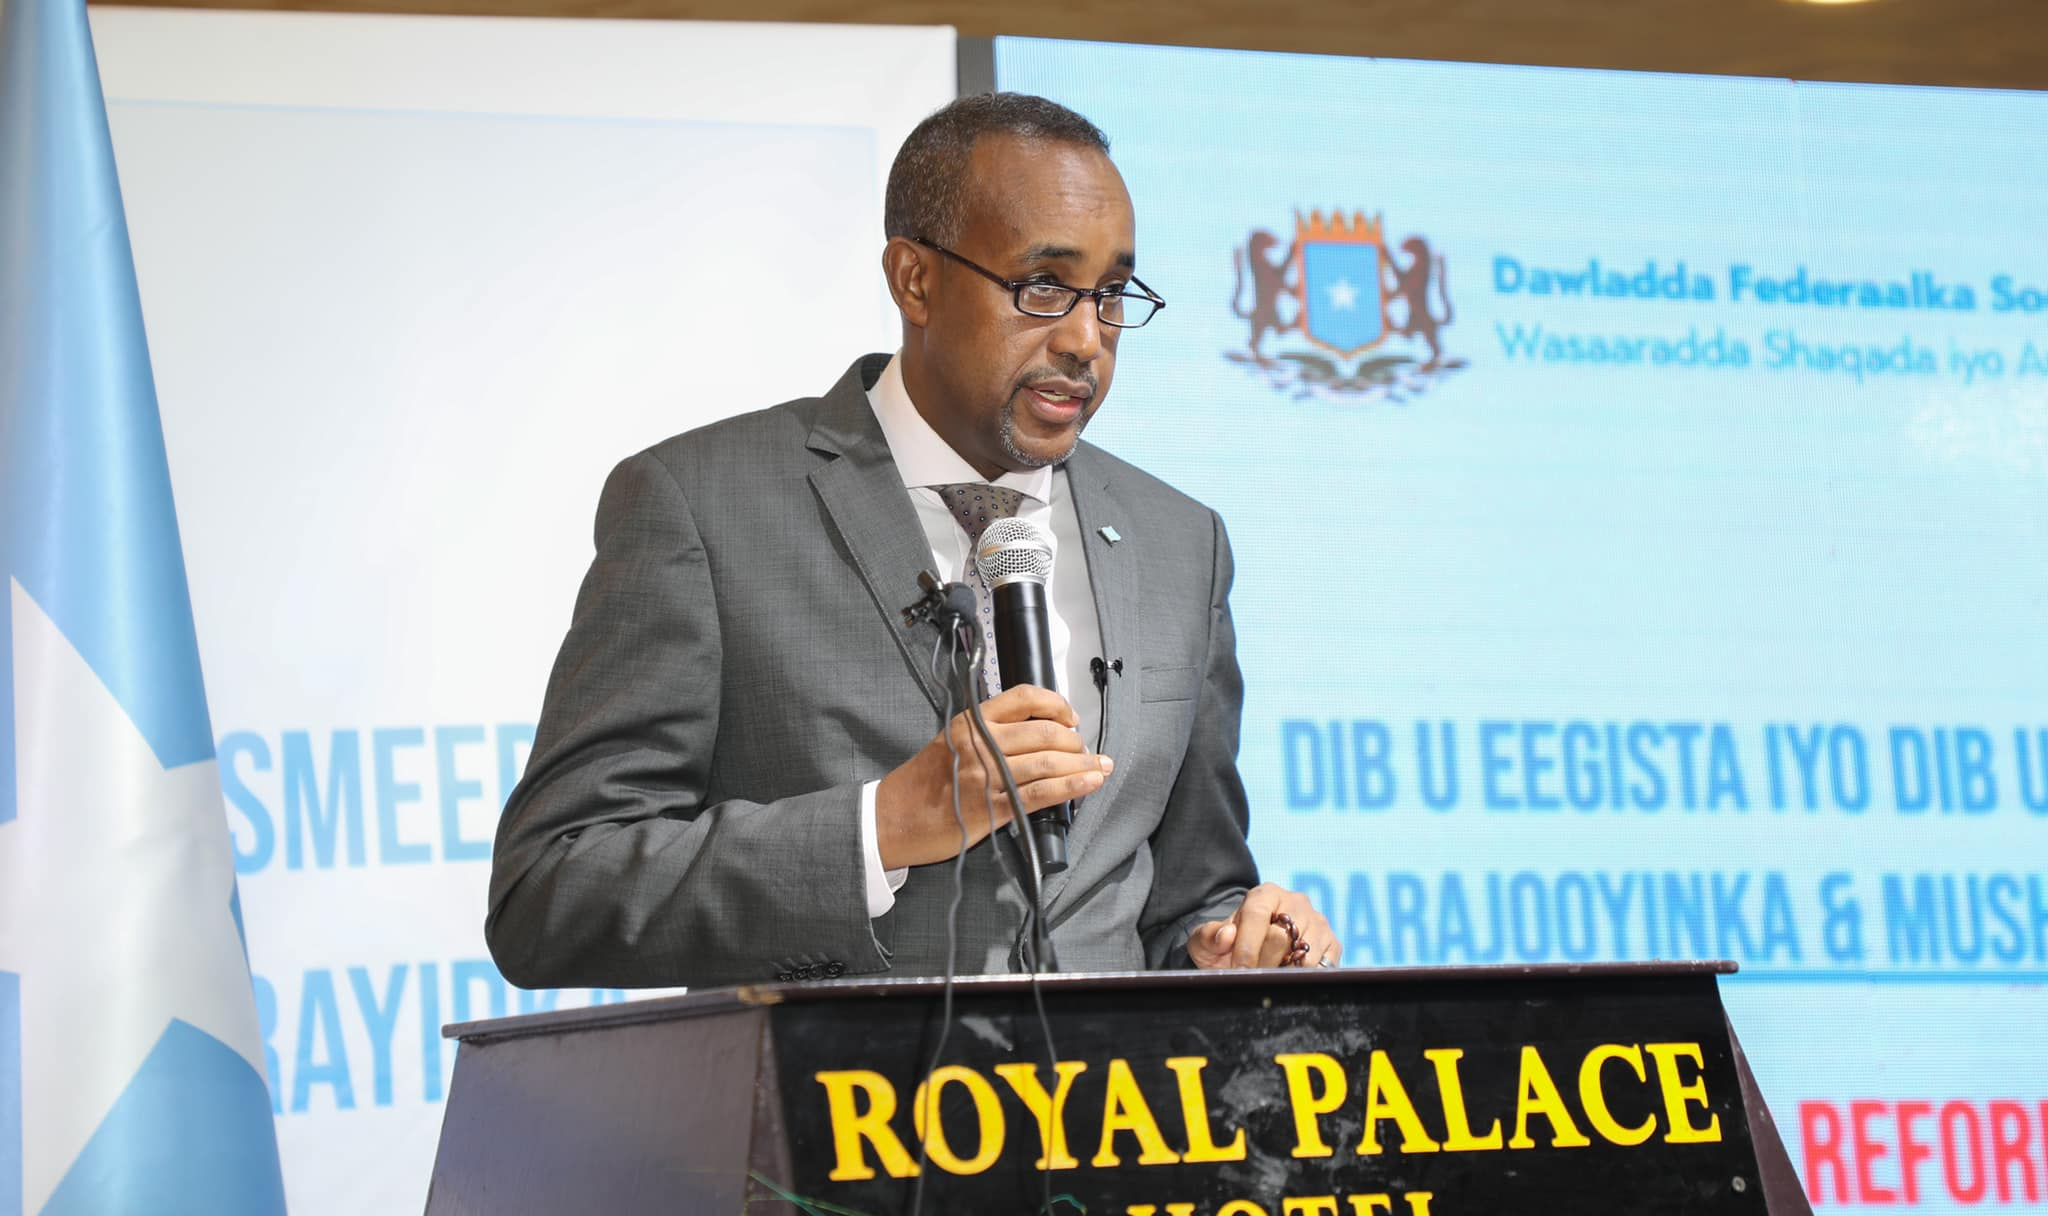 Somali PM launches a program to reform payment, grade structures of civil servants